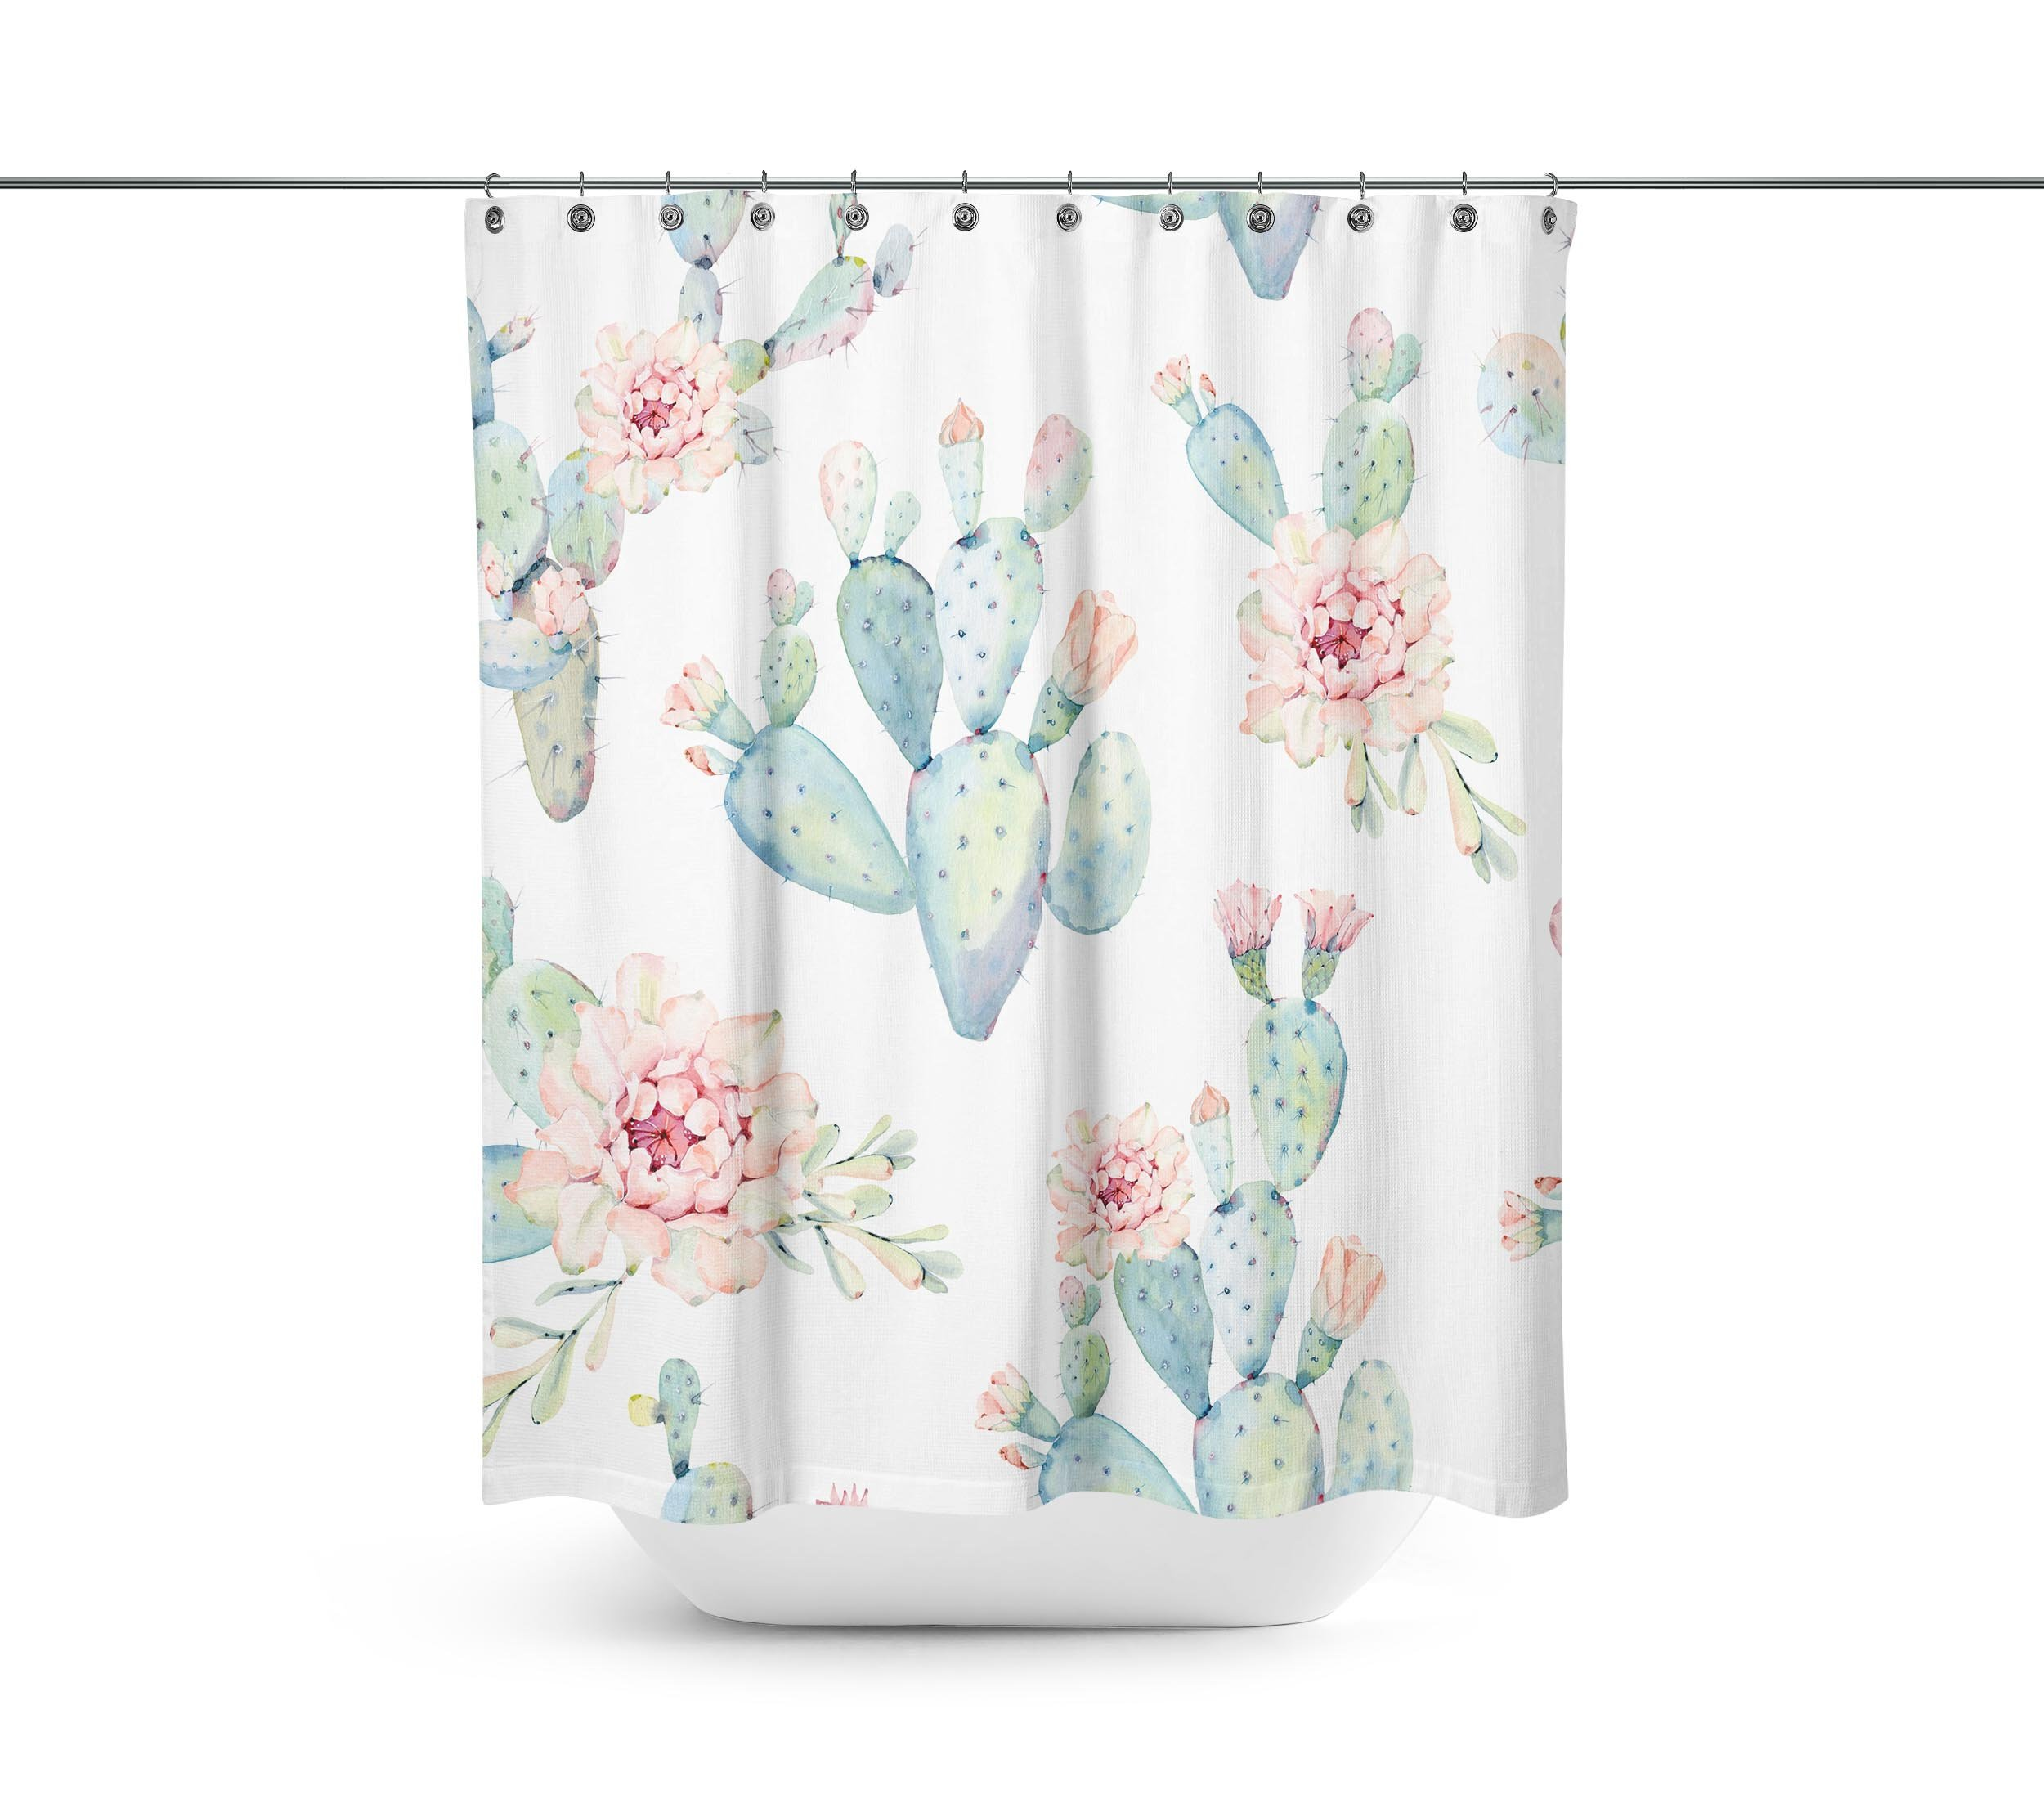 Abin Hand Drawn Watercolor Saguaro Cactus Seamless Pattern Shower Curtains,Water-Repellent & Anti-Bacterial Waterproof Mildew-Resistant Fabric with 12 Curtain Hooks 72-Inch by 72-Inch